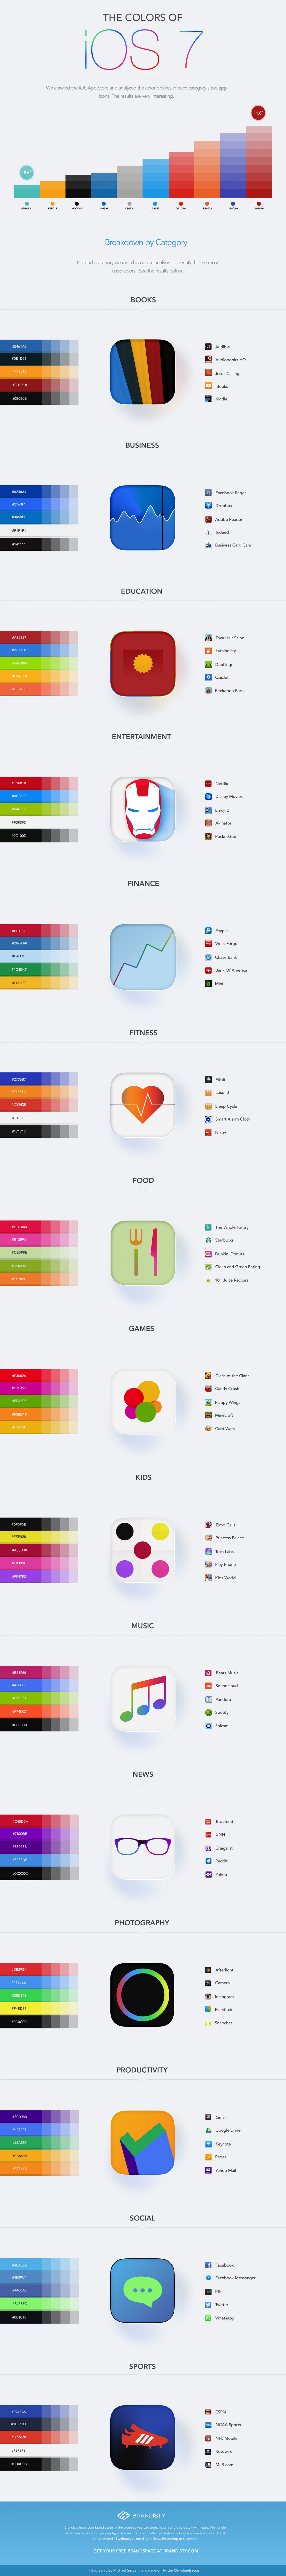 The colors of iOS7 Infographic